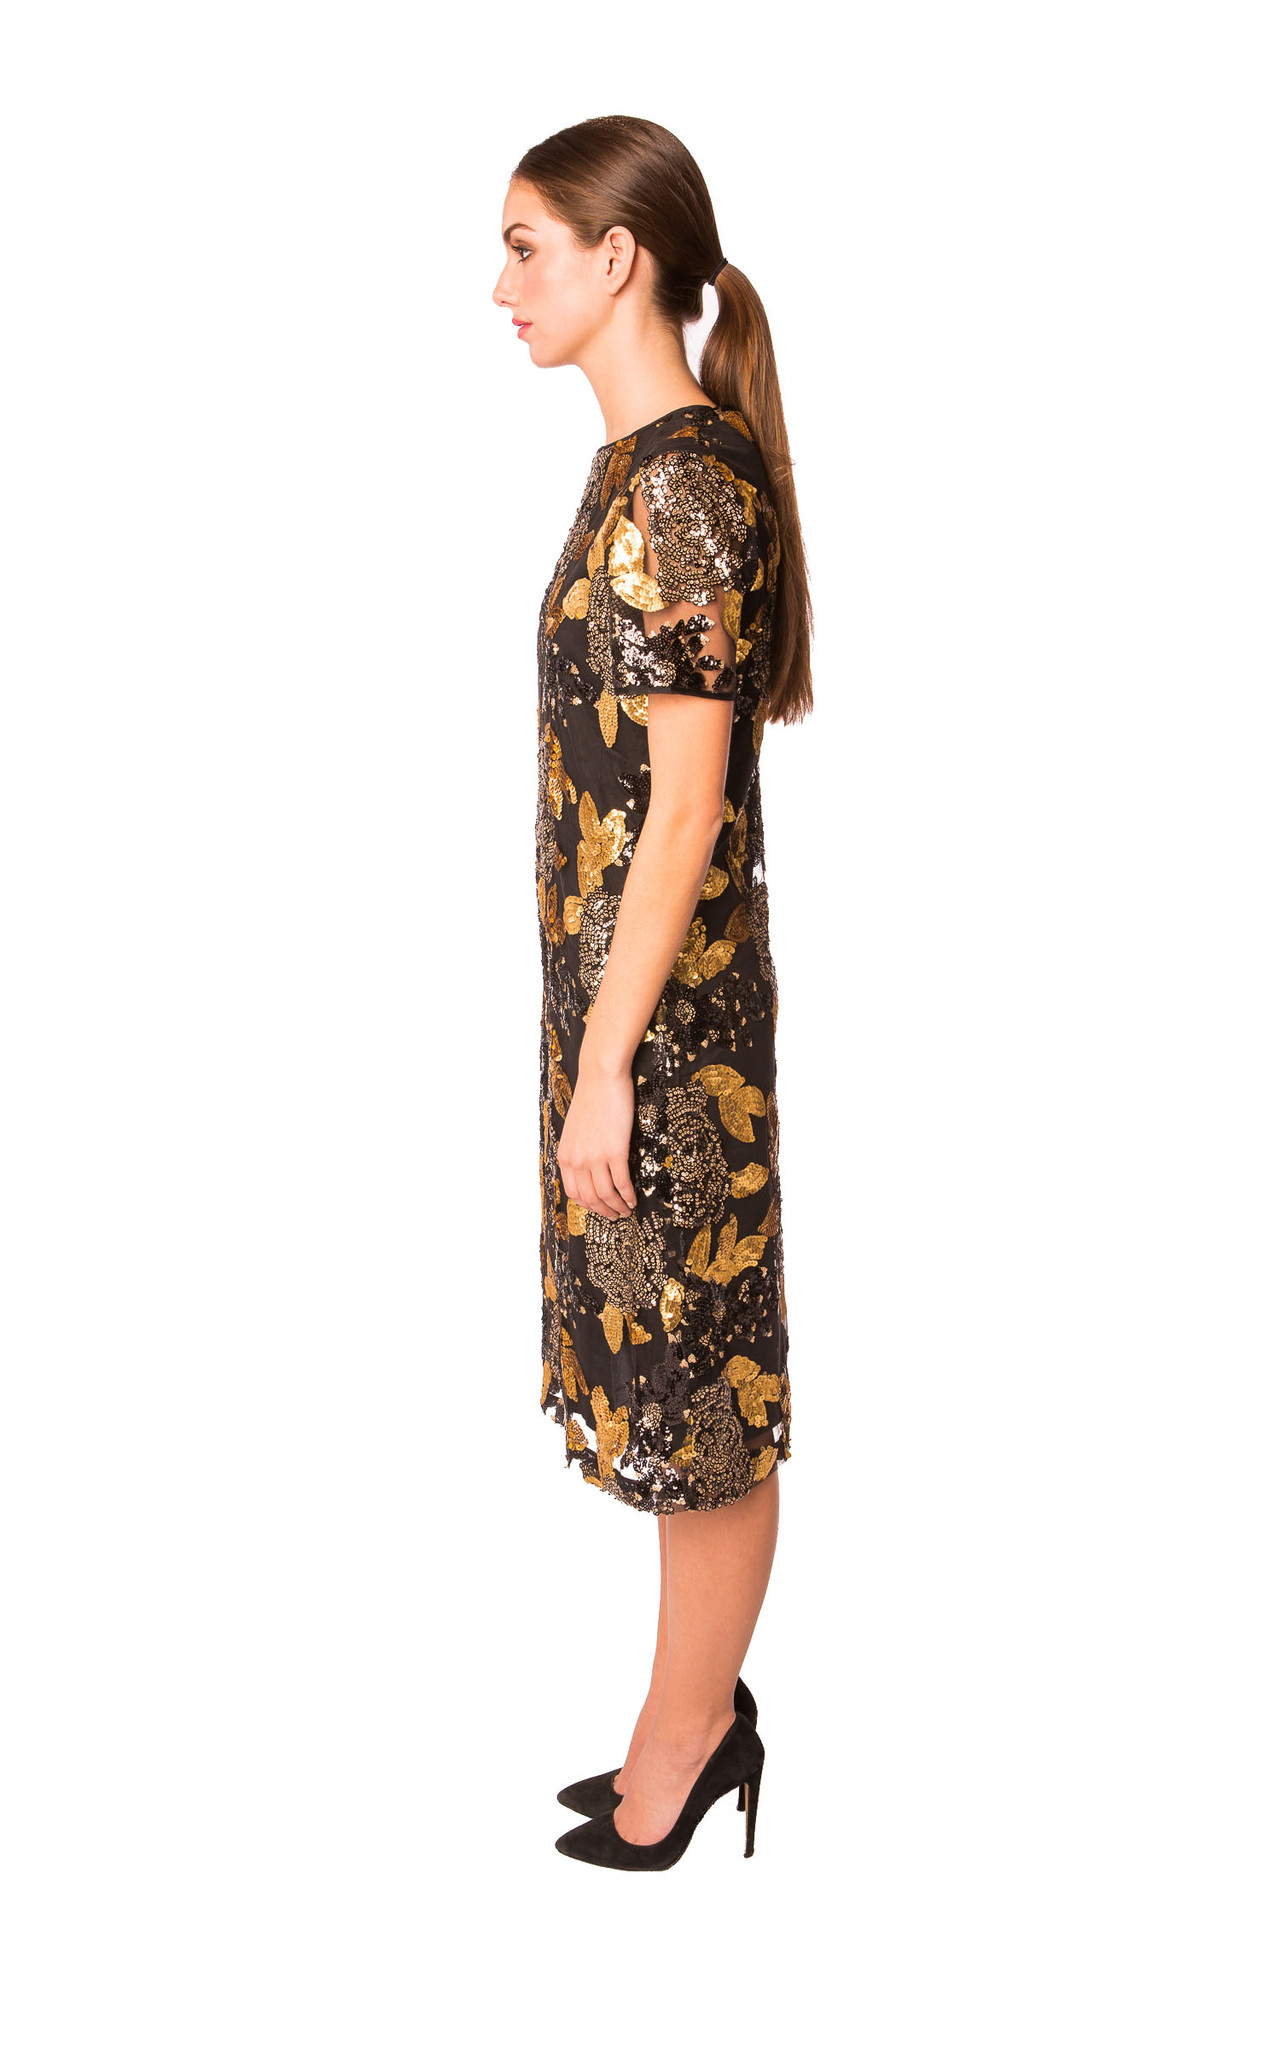 Samantha sleeper floral sequin dress in black on purely fashion